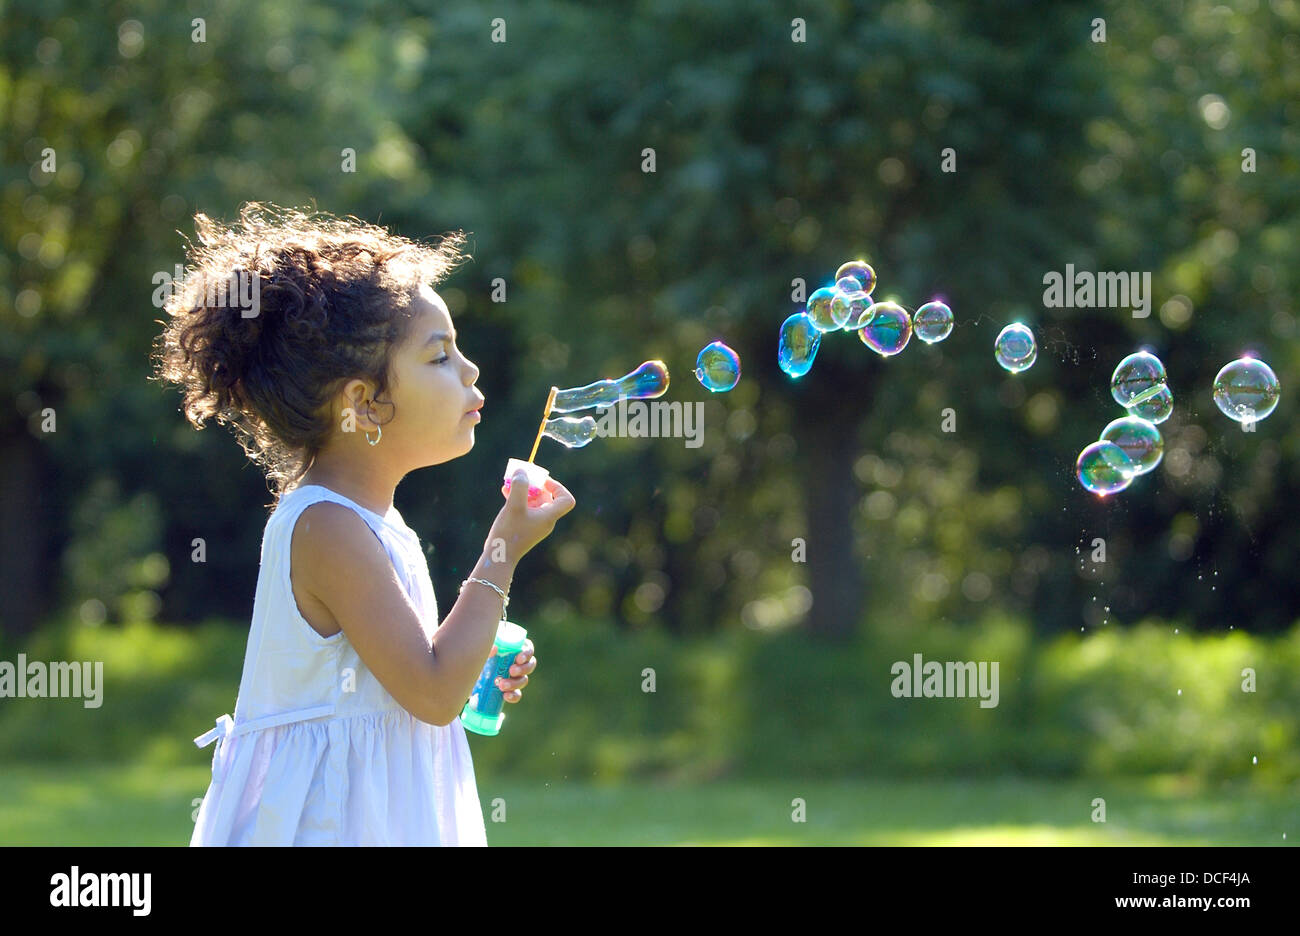 Little girl blowing bubbles in the park - Stock Image